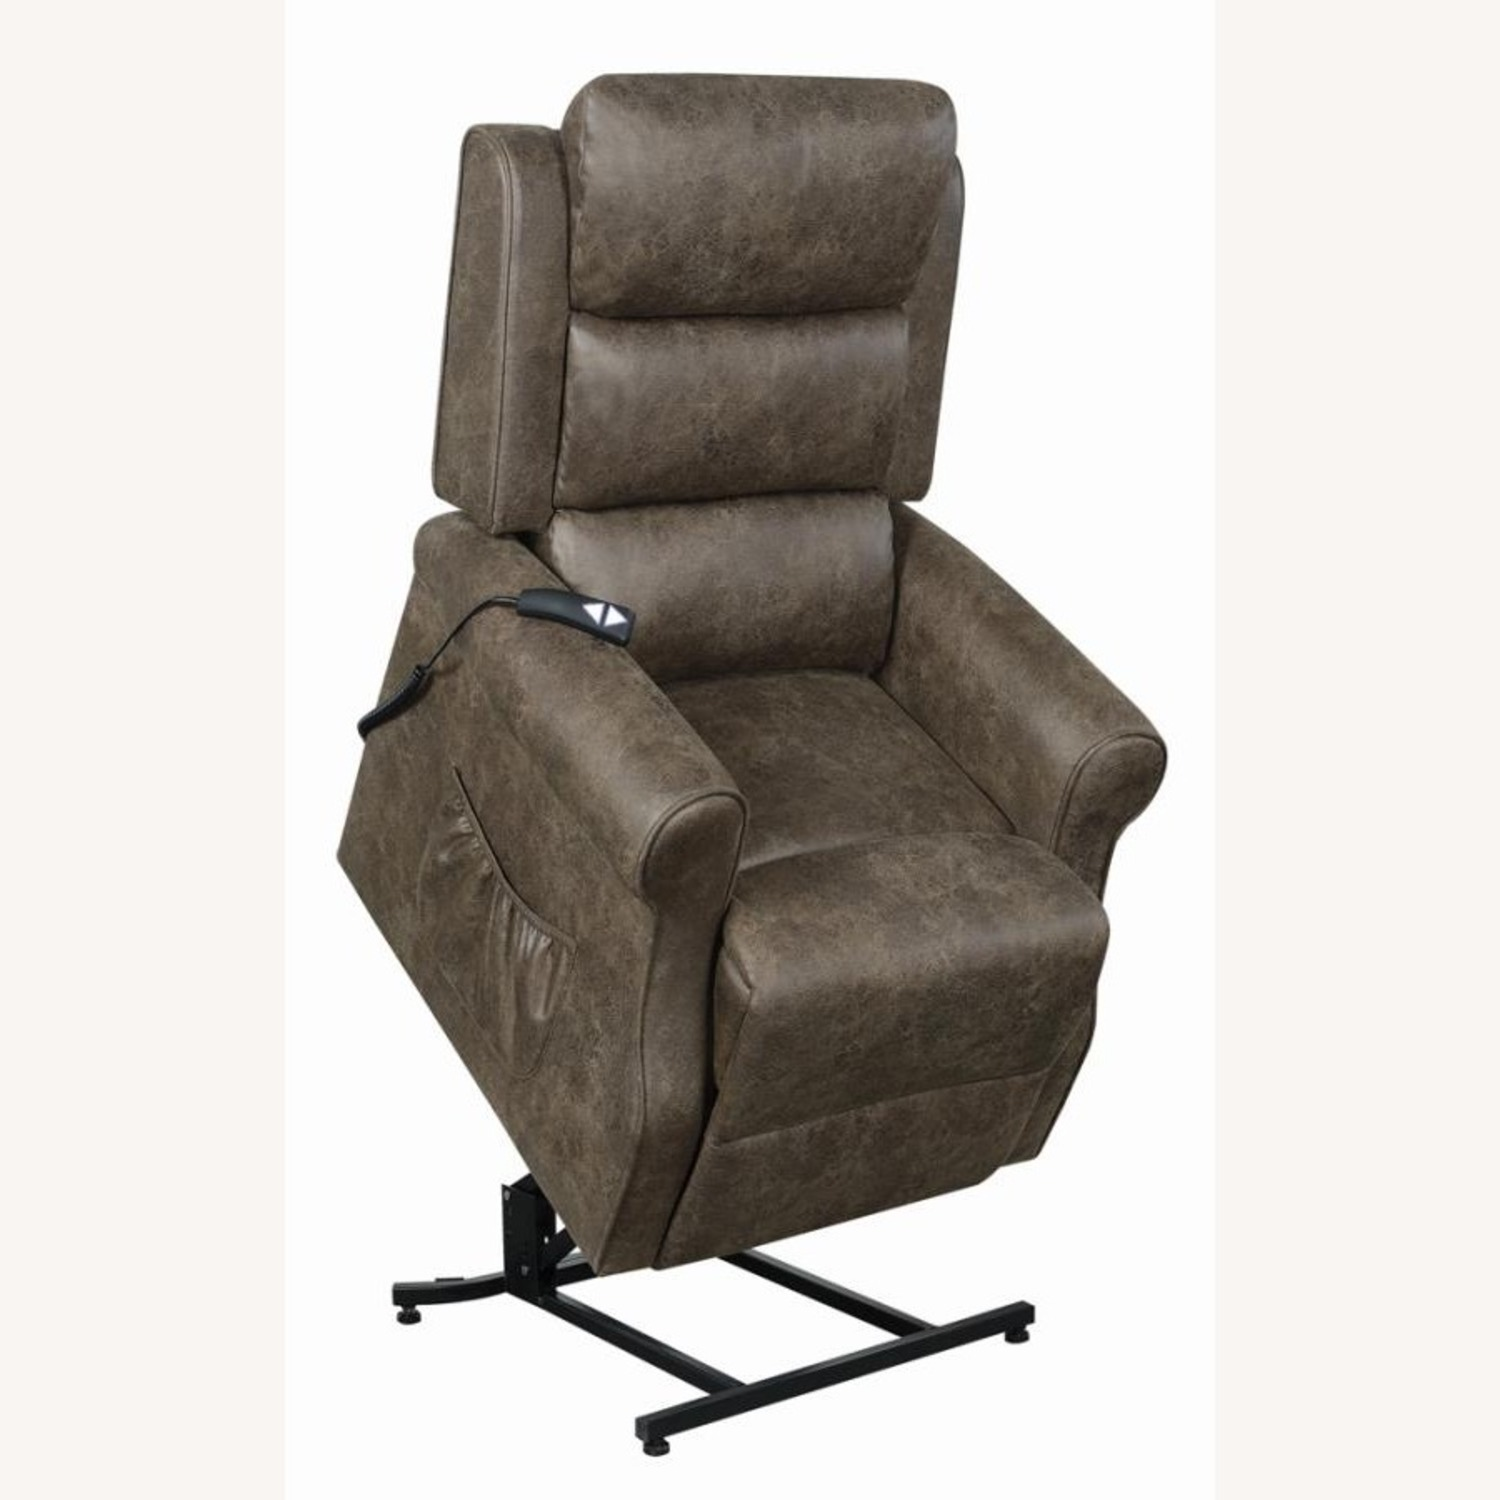 Power Lift Recliner In Brown Faux Suede Upholstery - image-3